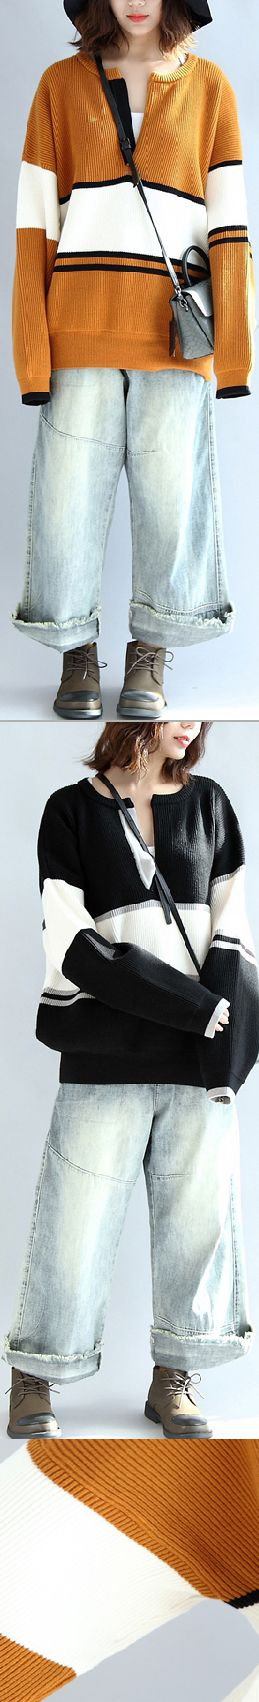 -yellow-white-patchwork-cotton-knitted-tops-neck-front-open-sweater